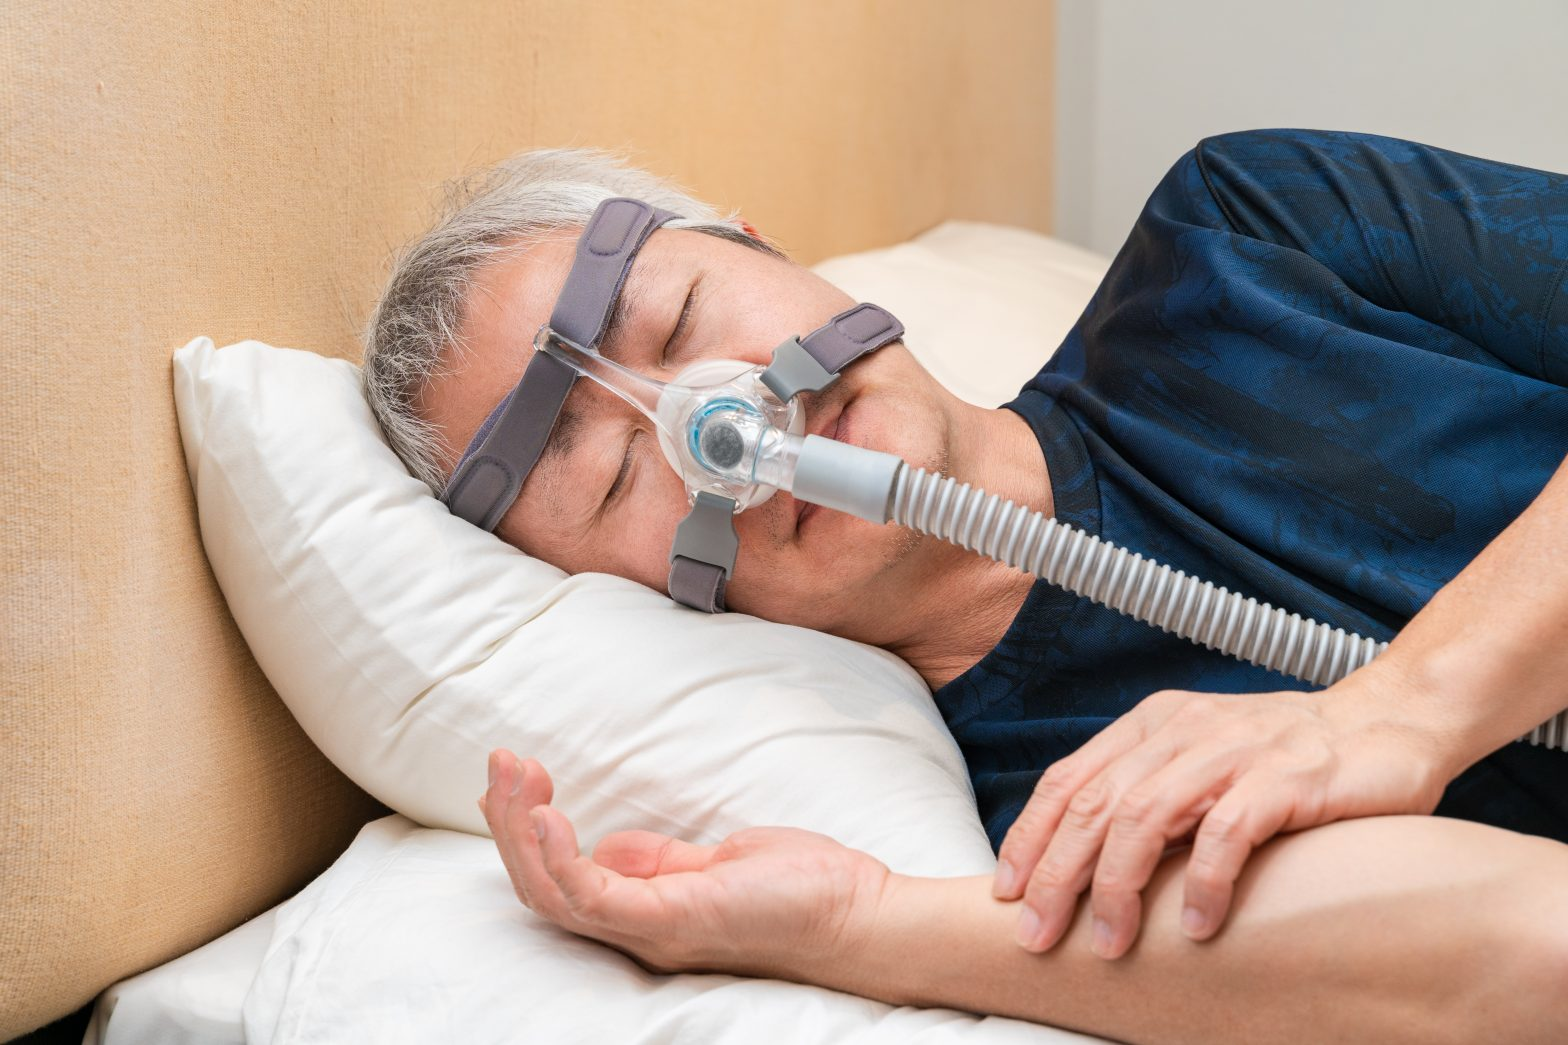 Middle aged man wearing a CPAP nasal mask while in bed.